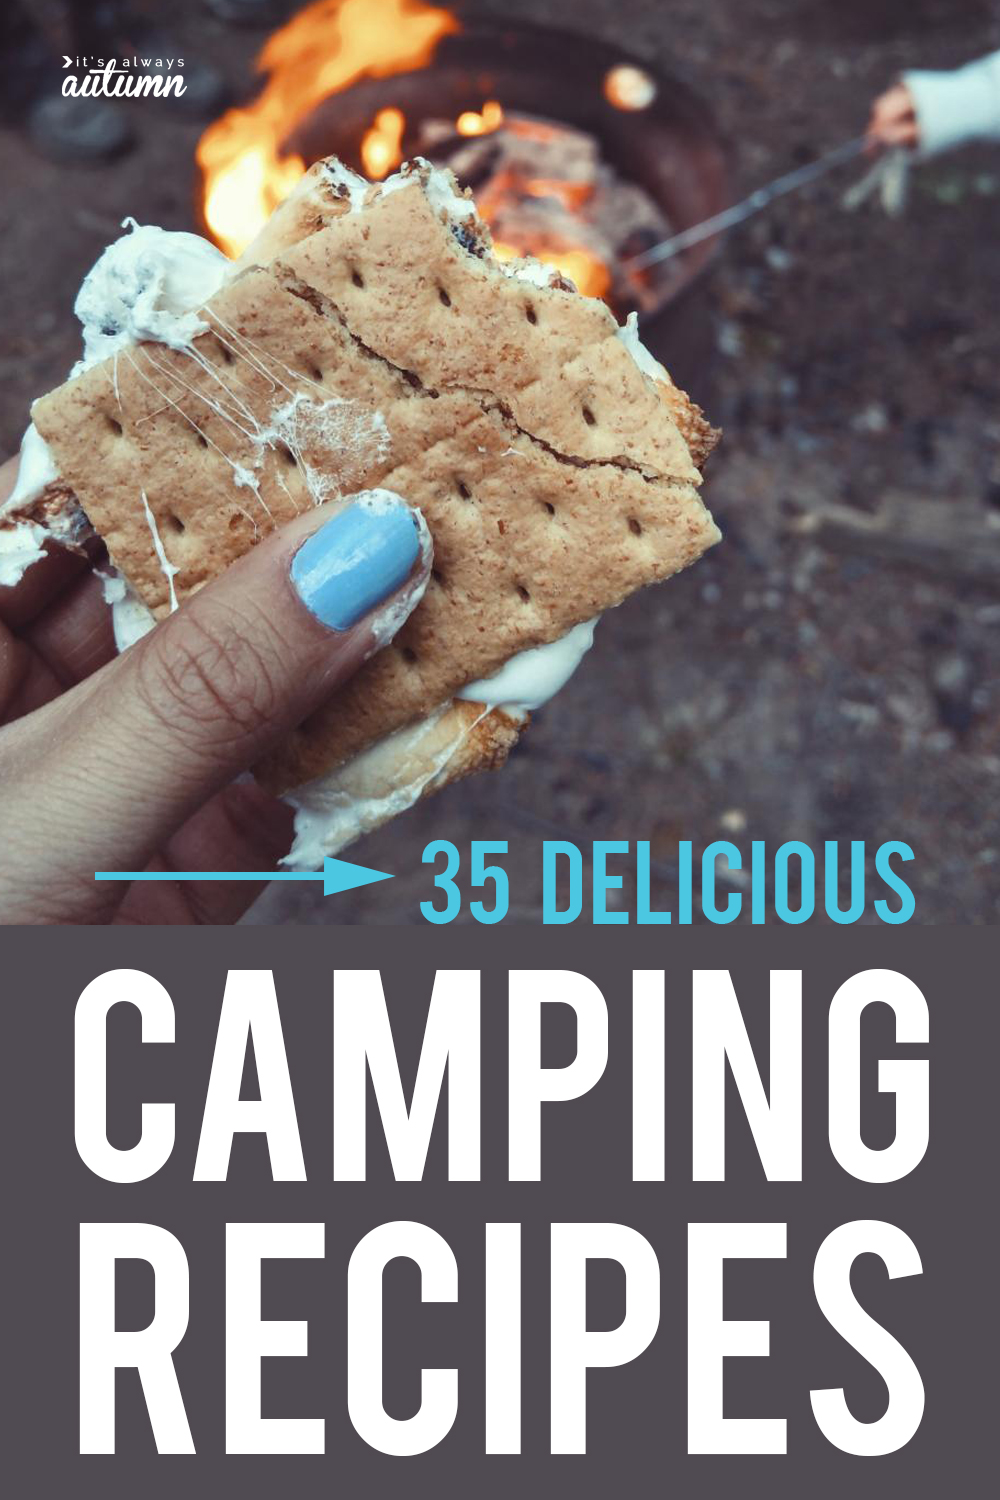 35 delicious camping recipes! The best camping food ideas, including foil packet dinners, dutch oven dinners, breakfast ideas, campfire desserts, and more.